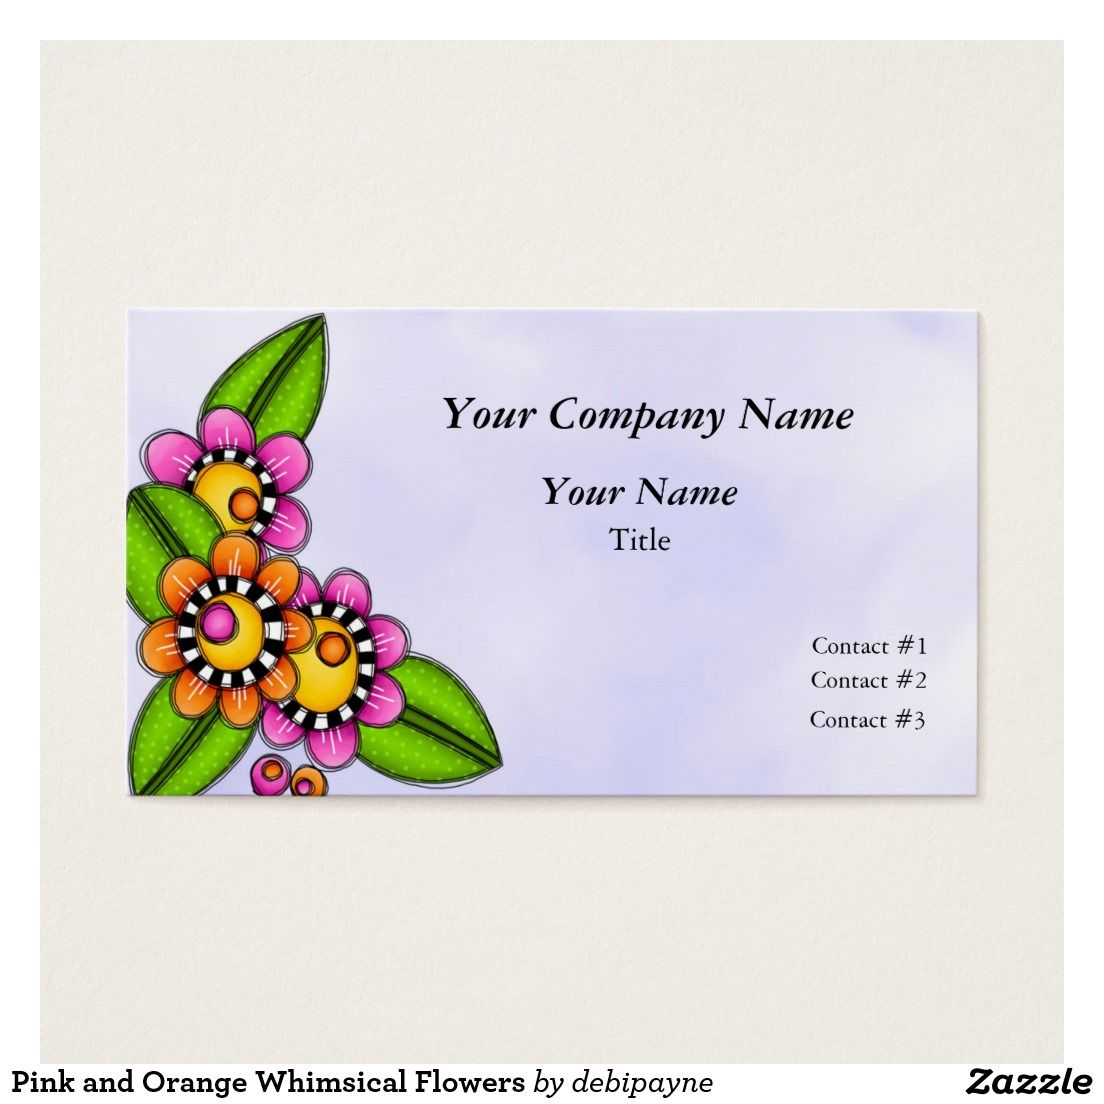 Pink and Orange Whimsical Flowers Business Card